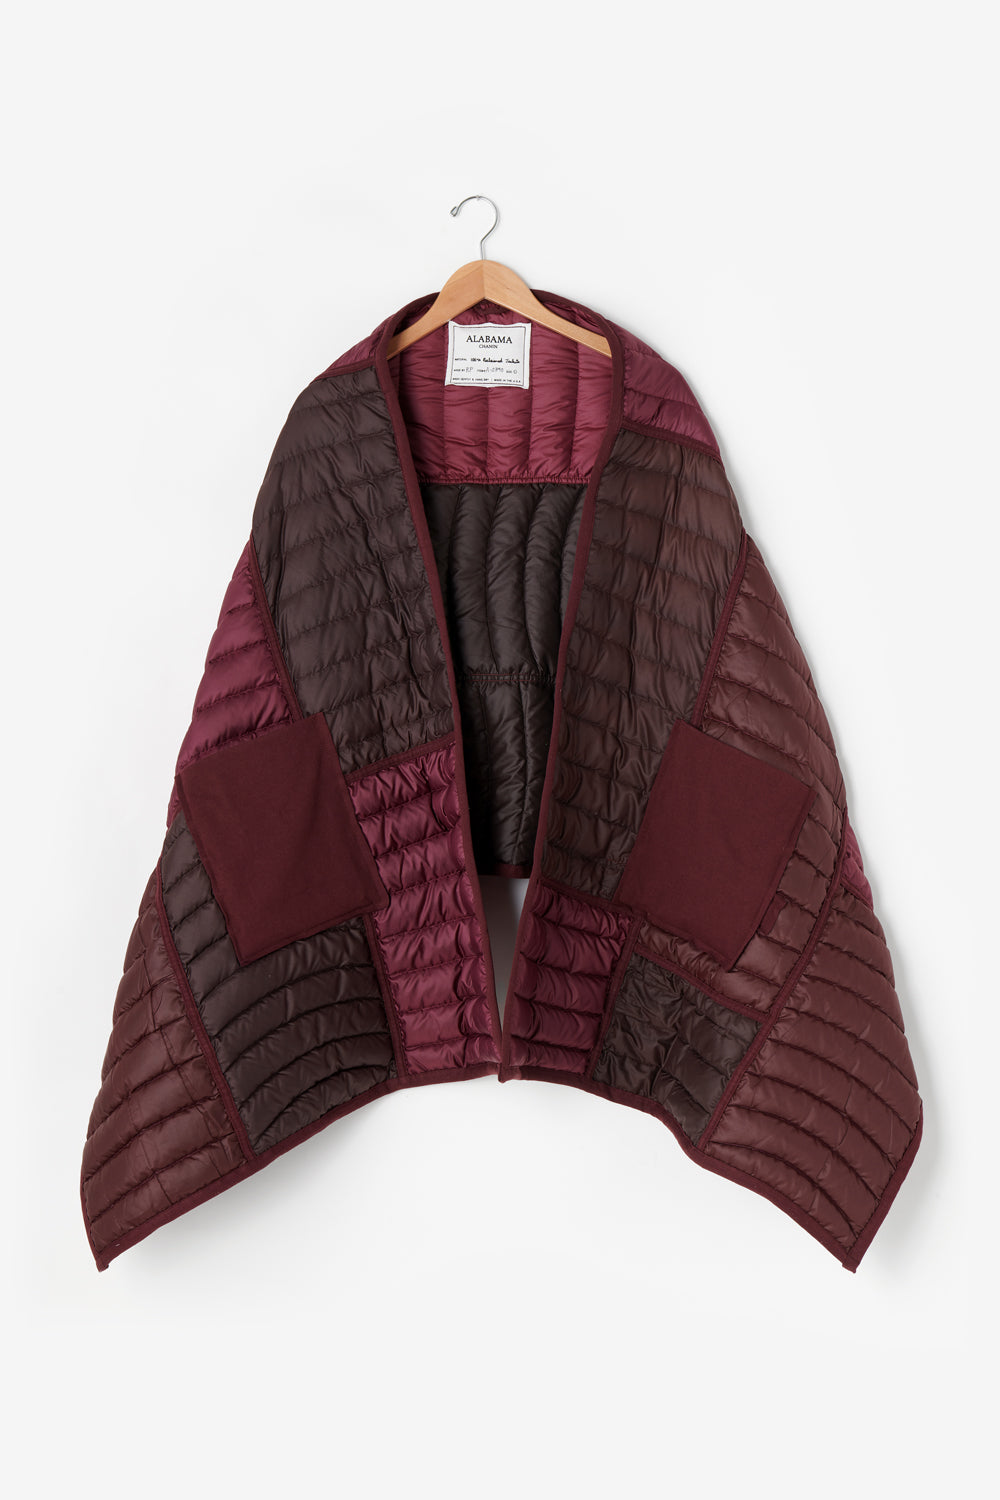 Alabama Chanin Reclaimed Down Wrap in Plum from Upcycled Down Jackets Women's Insulated Large Scarf